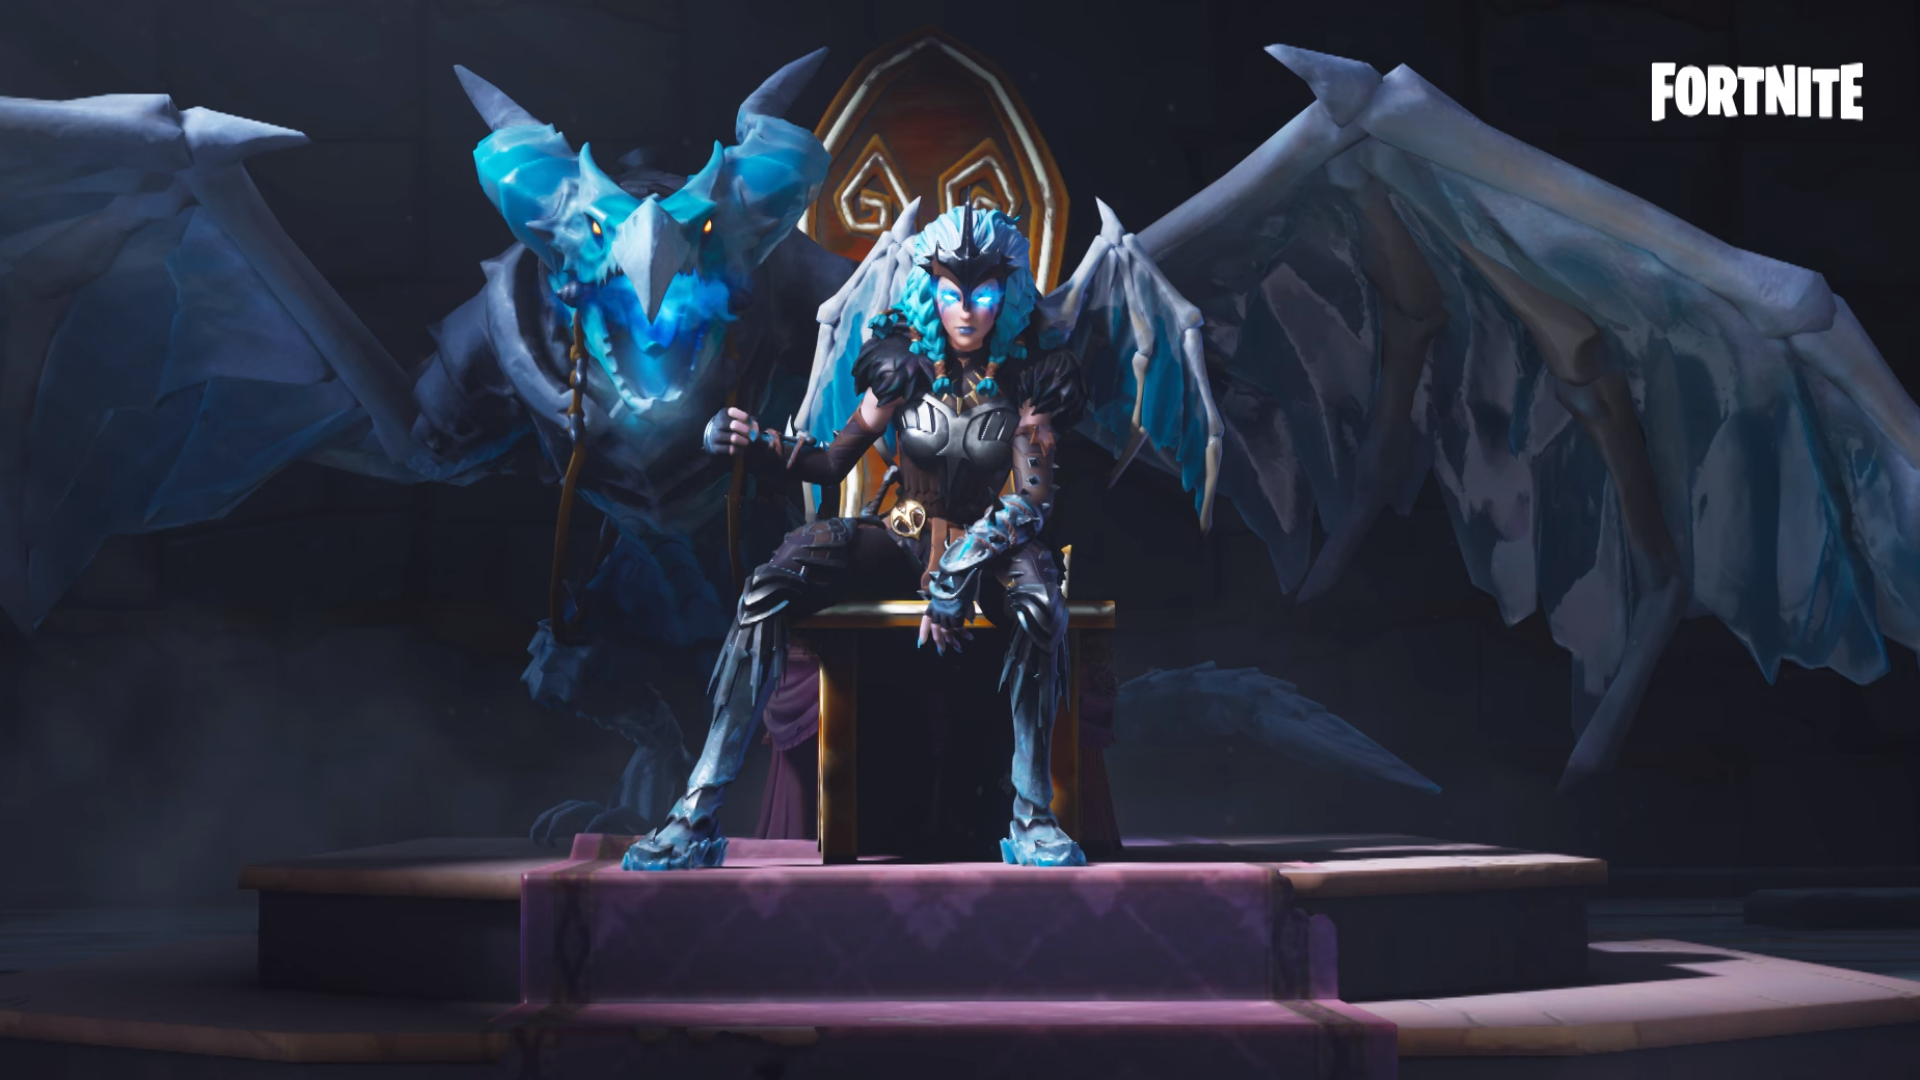 Fortnite Valkyrie Hd Wallpaper Background Image 1920x1080 Id 952326 Wallpaper Abyss